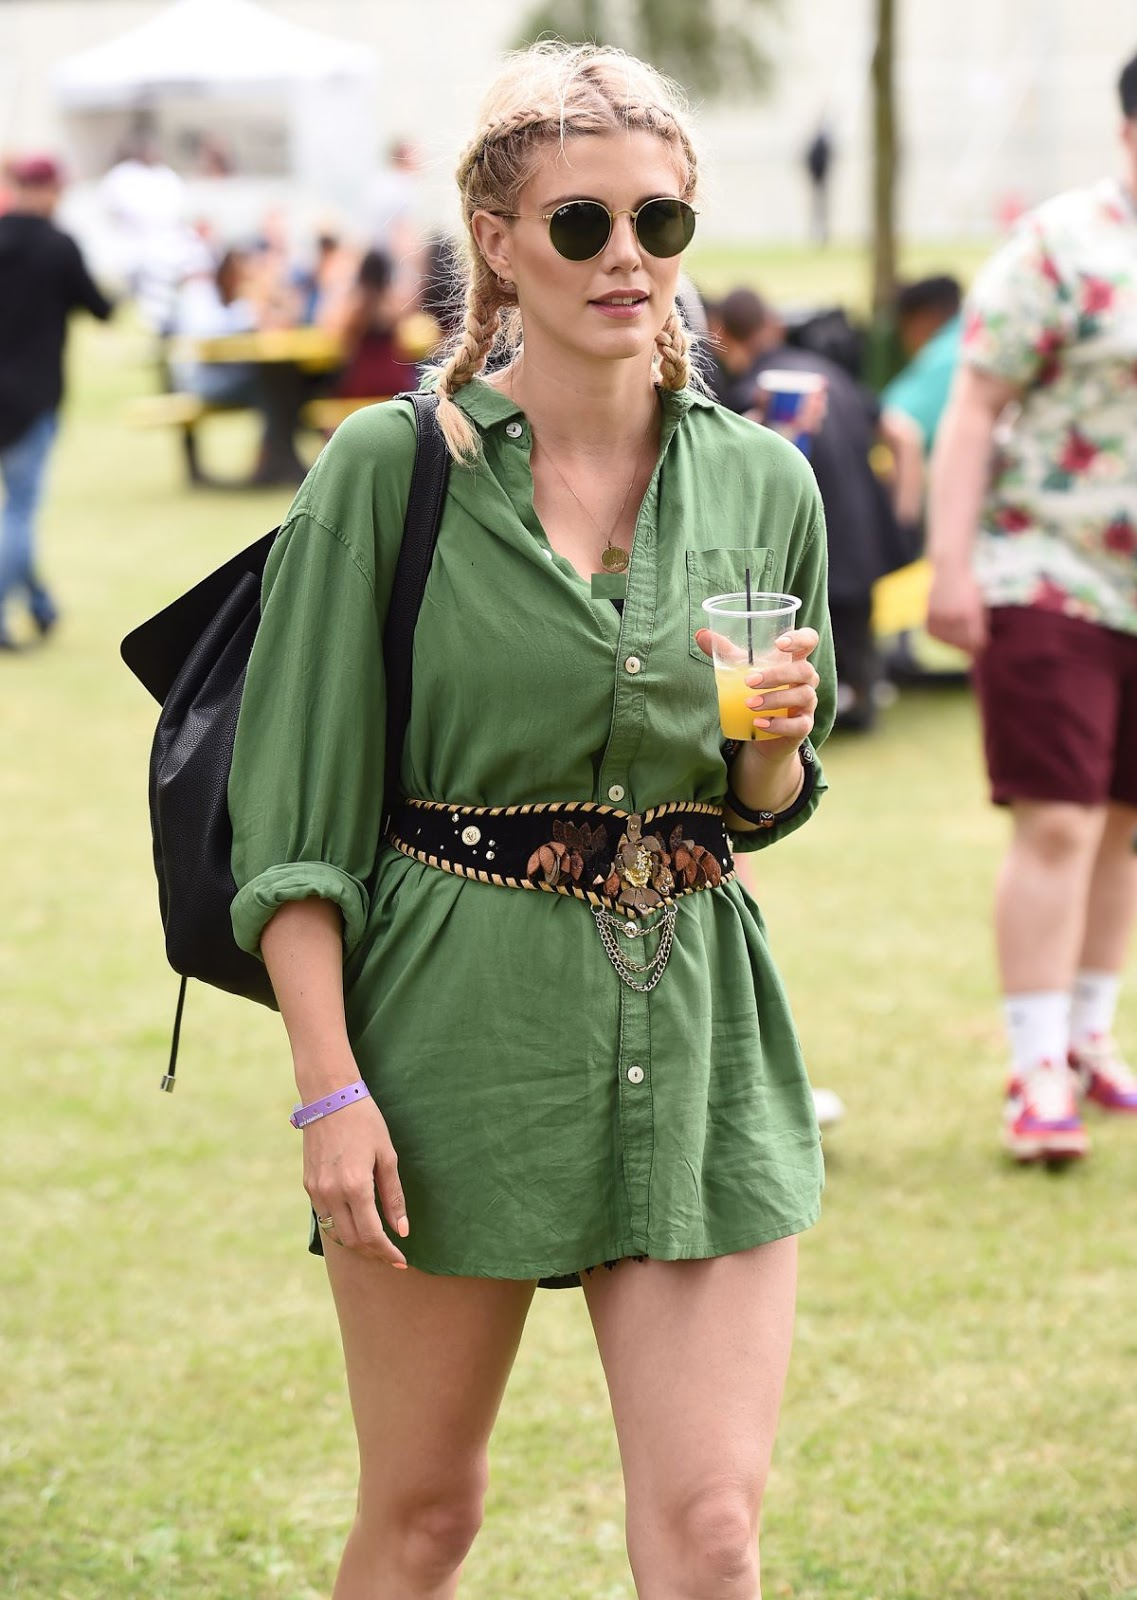 Full HQ Photos of Ashley James At Wireless Festival At Finsbury Park In London